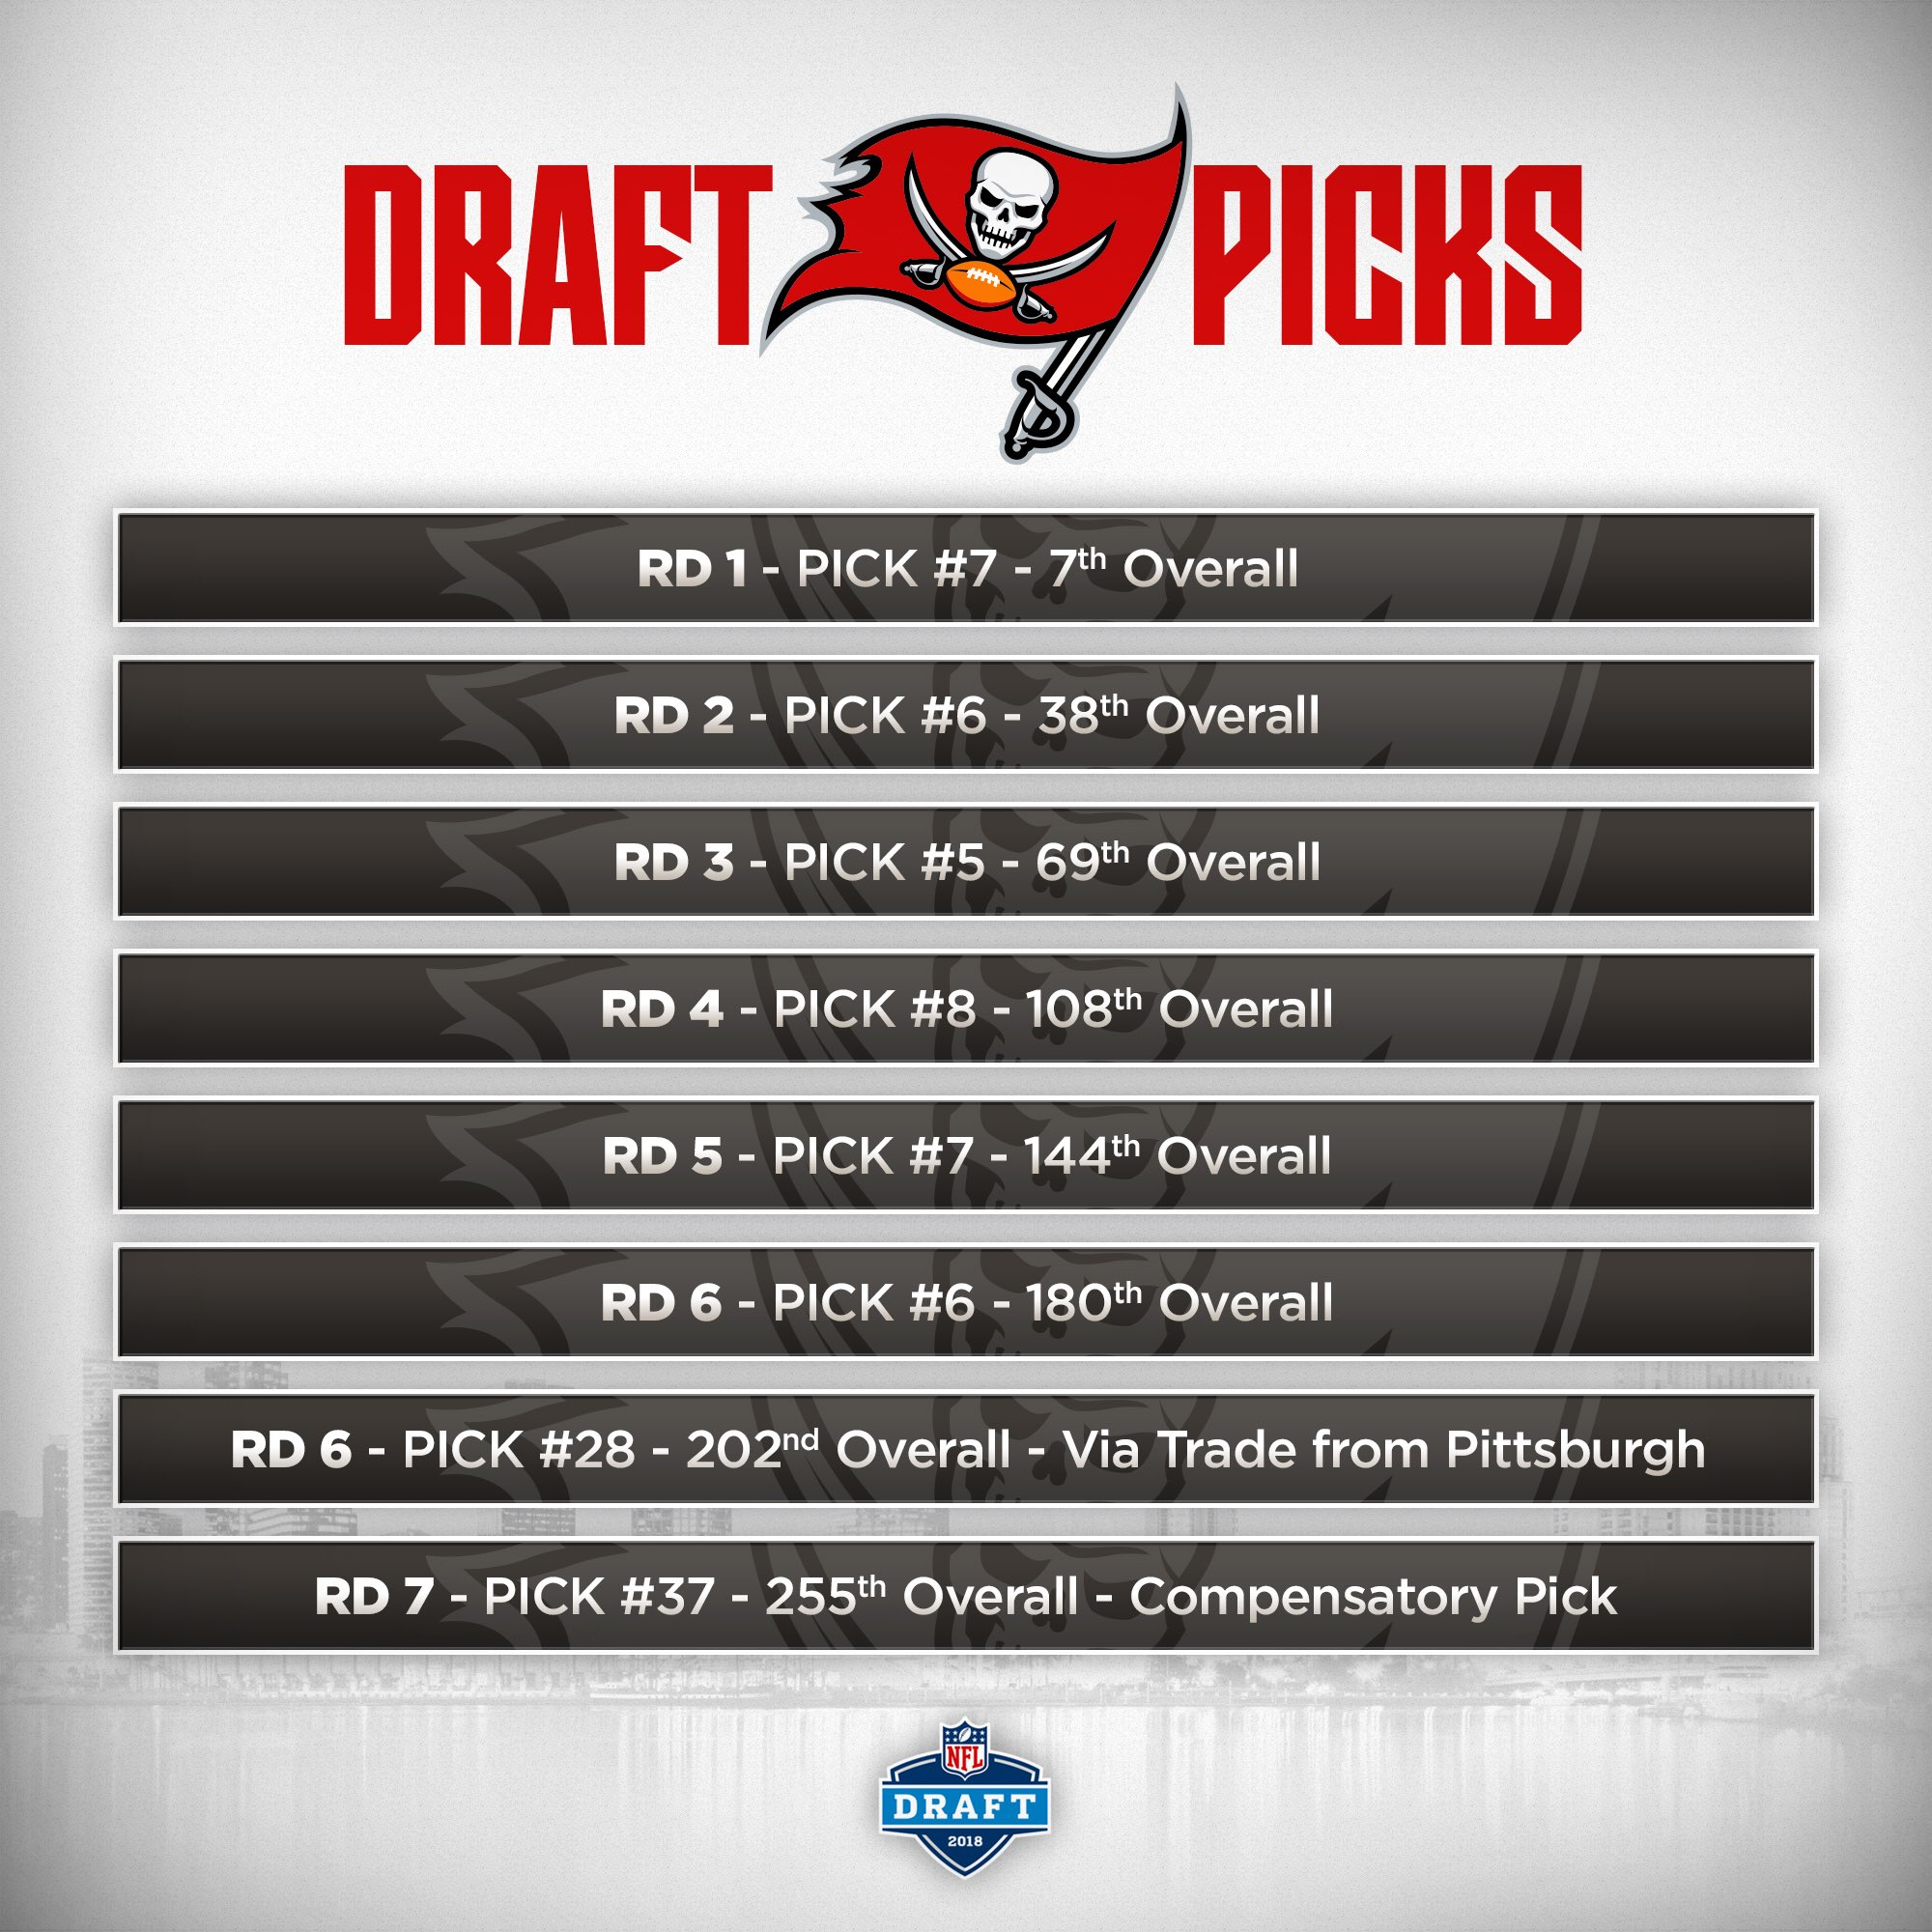 ��The Bucs receive a 7th round compensatory pick, this is what we're currently working with! �� https://t.co/ljVUkZJd4Z